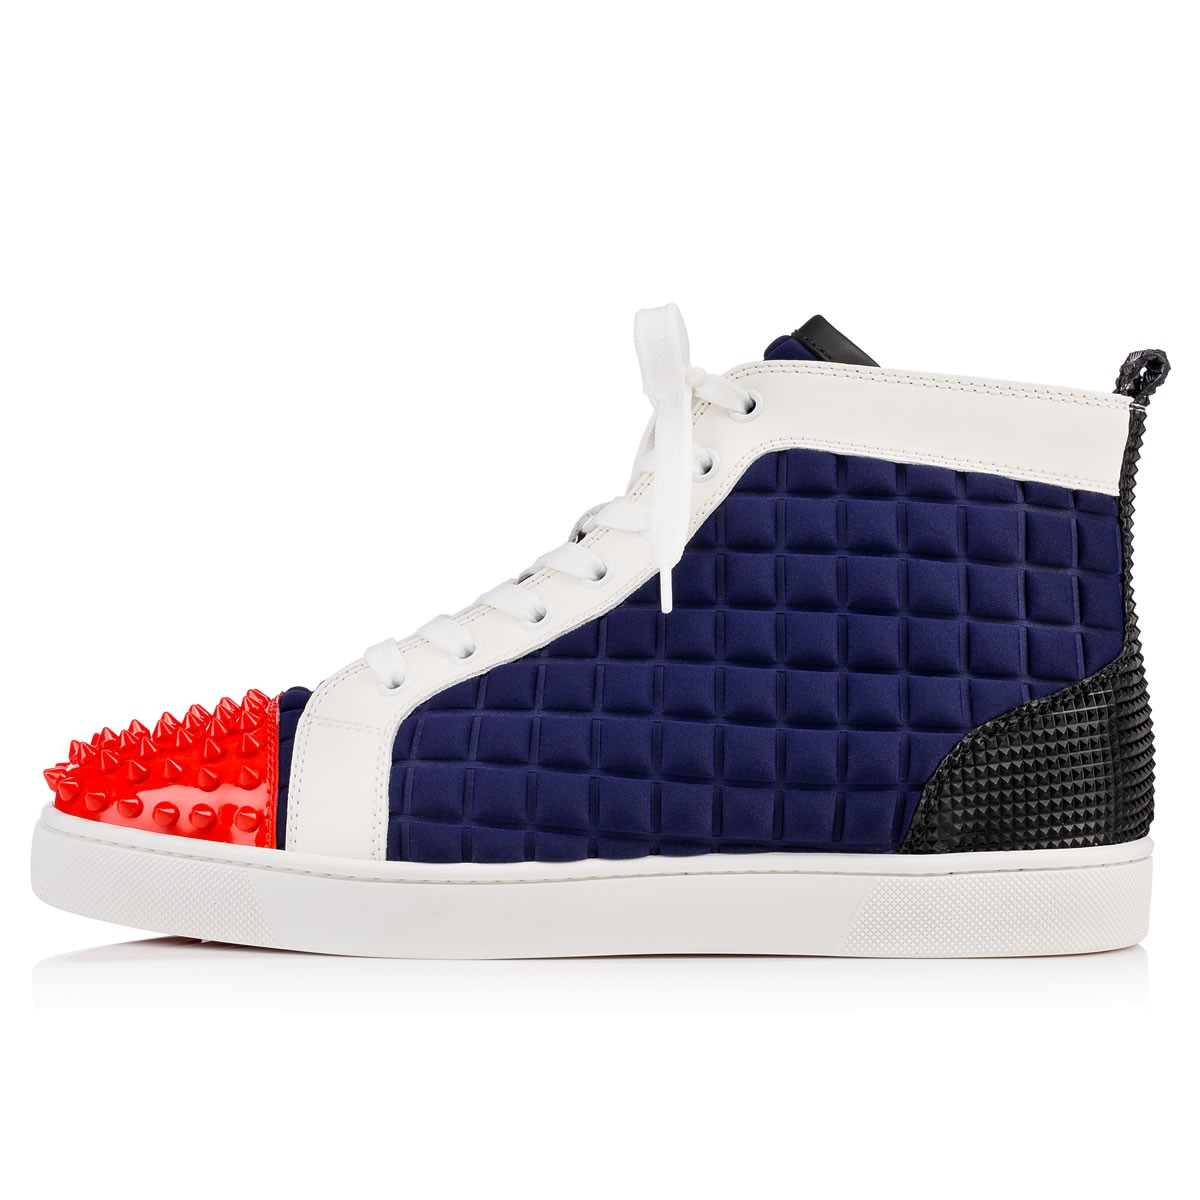 14a7d9a7f4f0 Lyst - Christian Louboutin Lou Spikes Neoprene High-Top Sneakers in ...